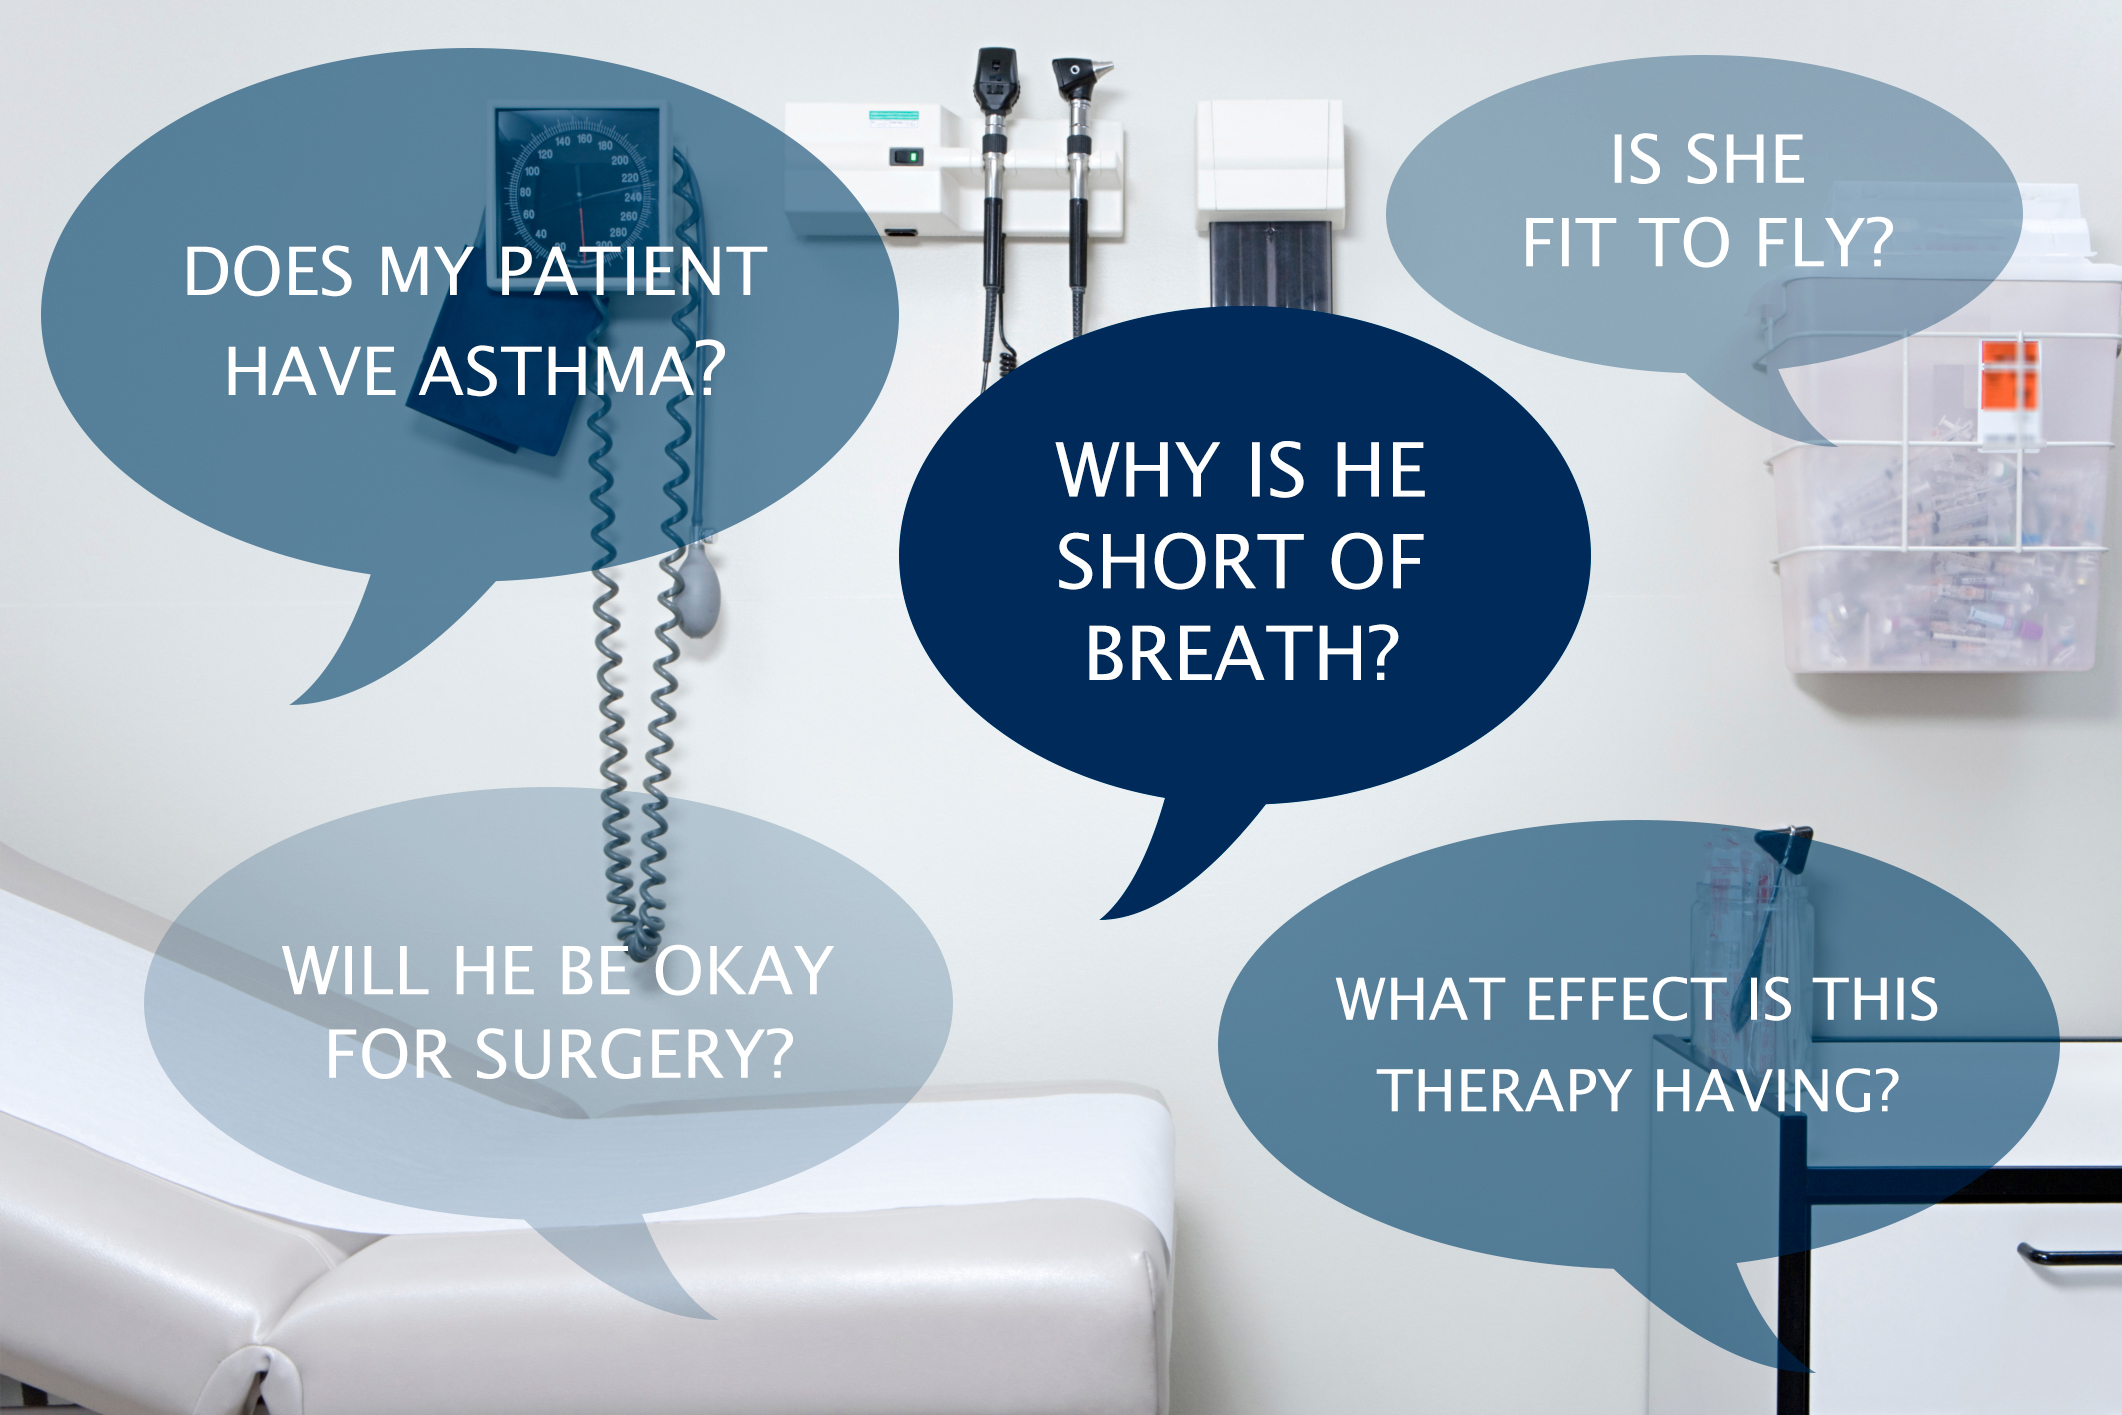 Does my patient have asthma? Are they... Fit to fly? Fit to drive? What effect is their therapy having? COPD?